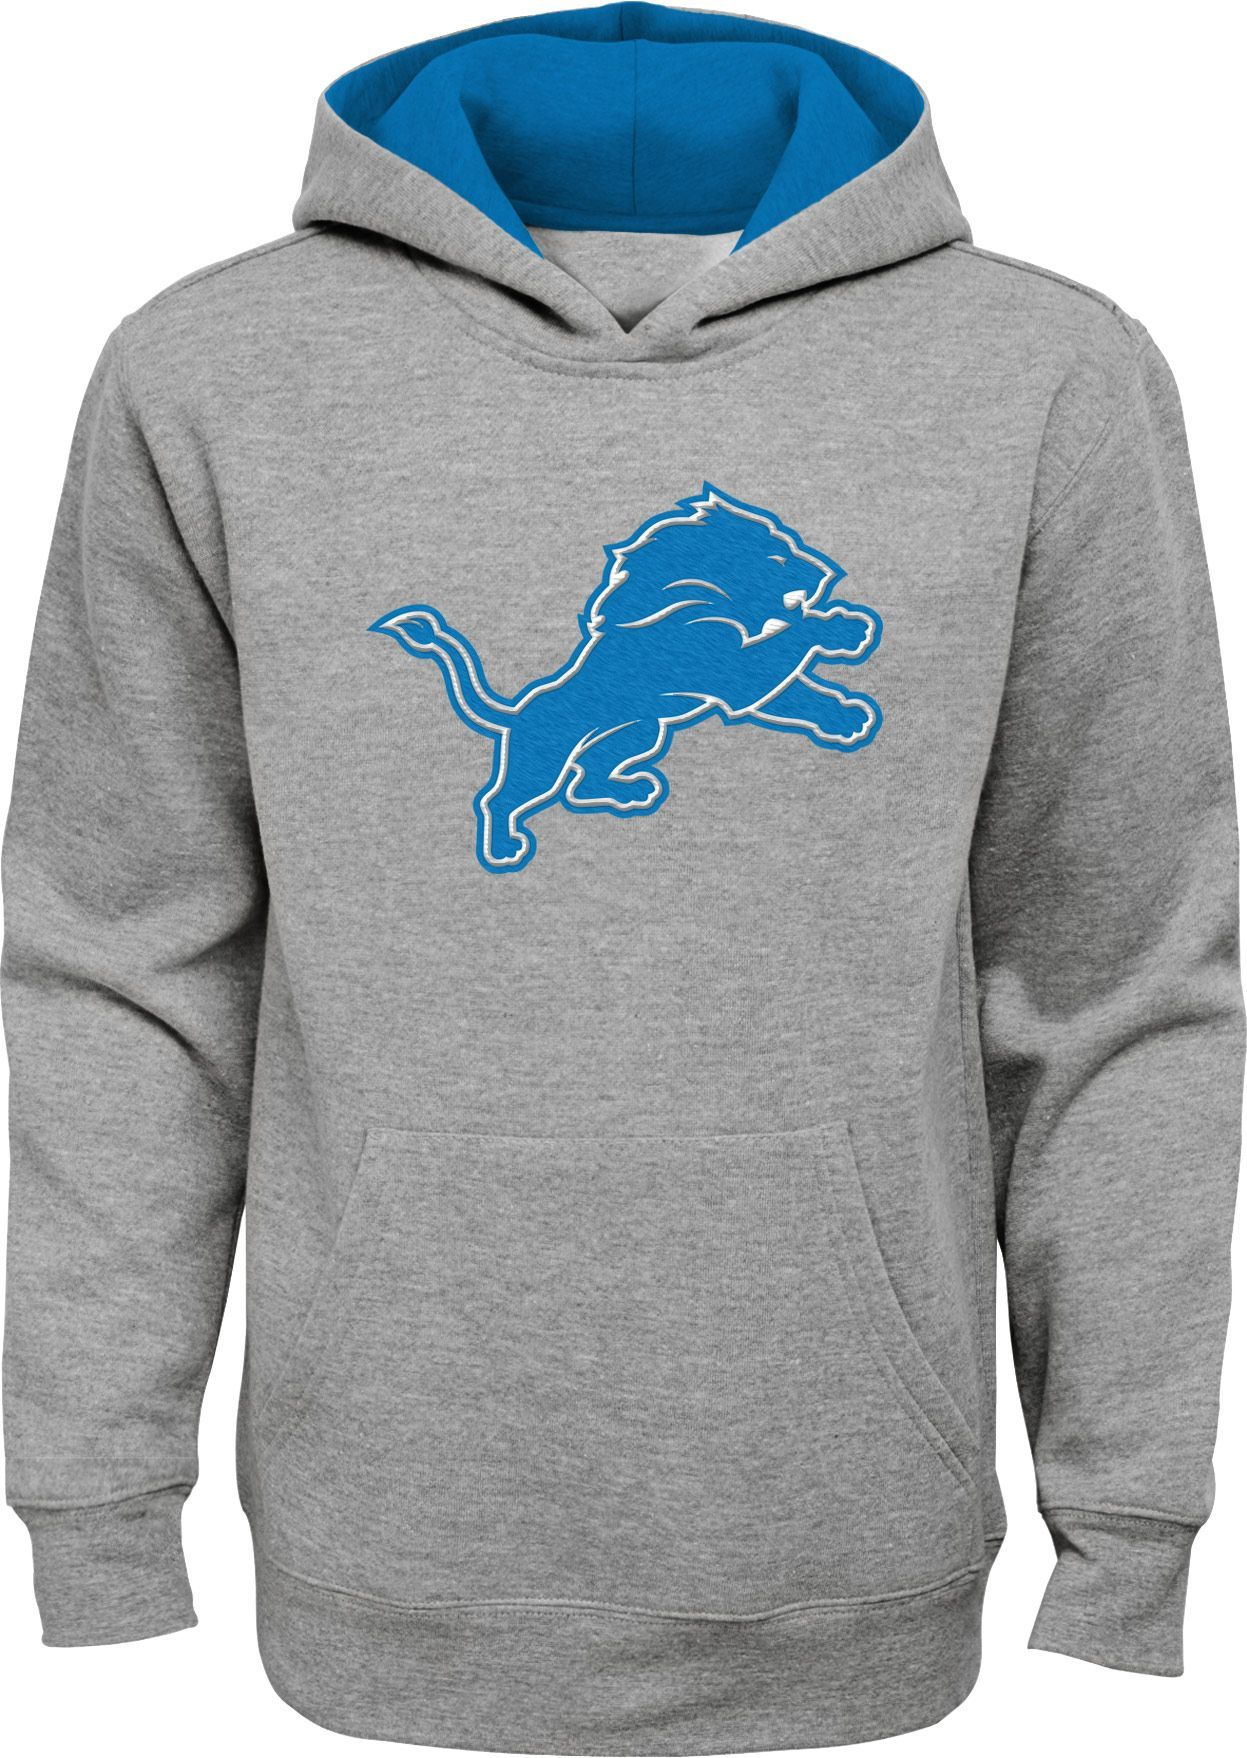 a085dc7f0b8 NFL Team Apparel Youth Detroit Lions Prime Grey Pullover Hoodie ...